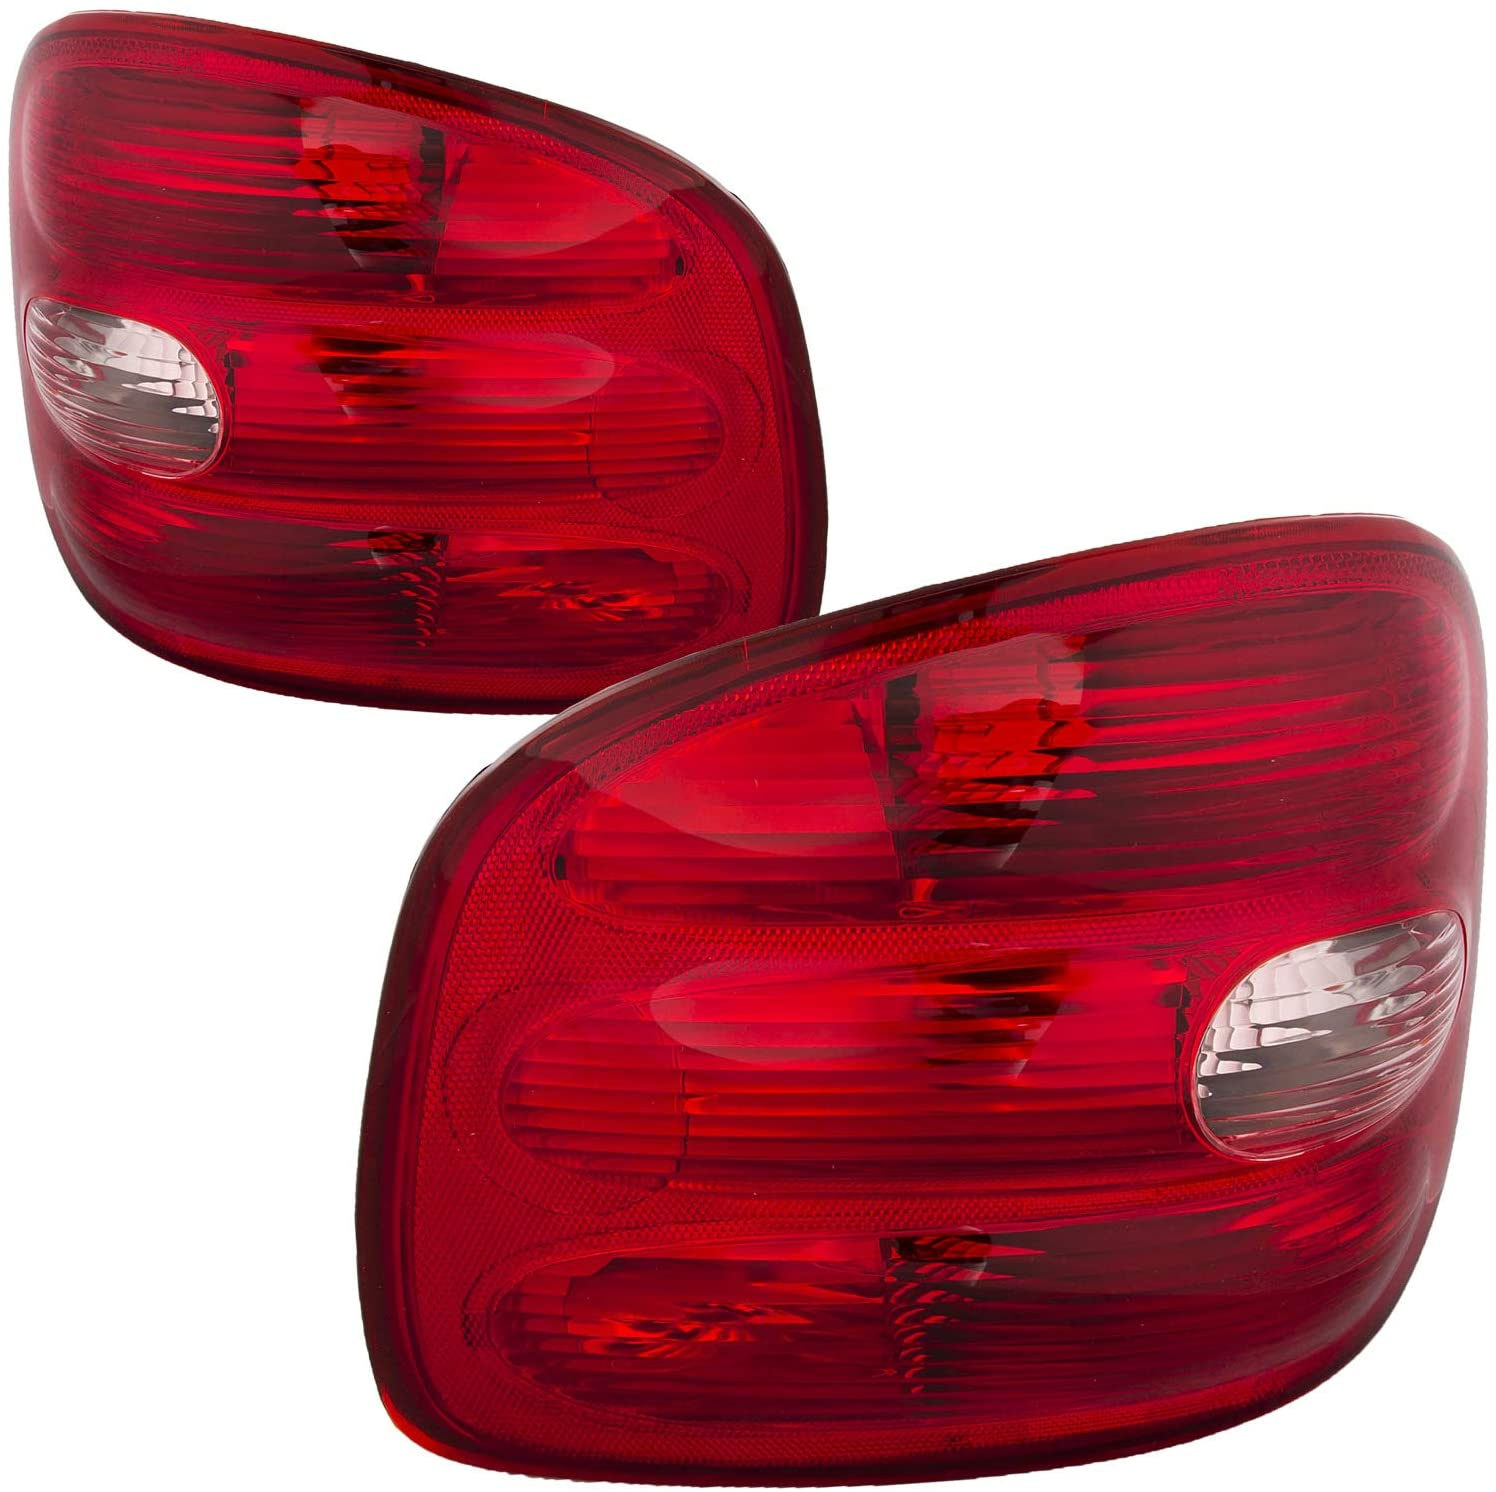 HEADLIGHTSDEPOT Tail Lights Set Compatible with Ford F-150 F-250 Flareside models produced up to 2/11/00